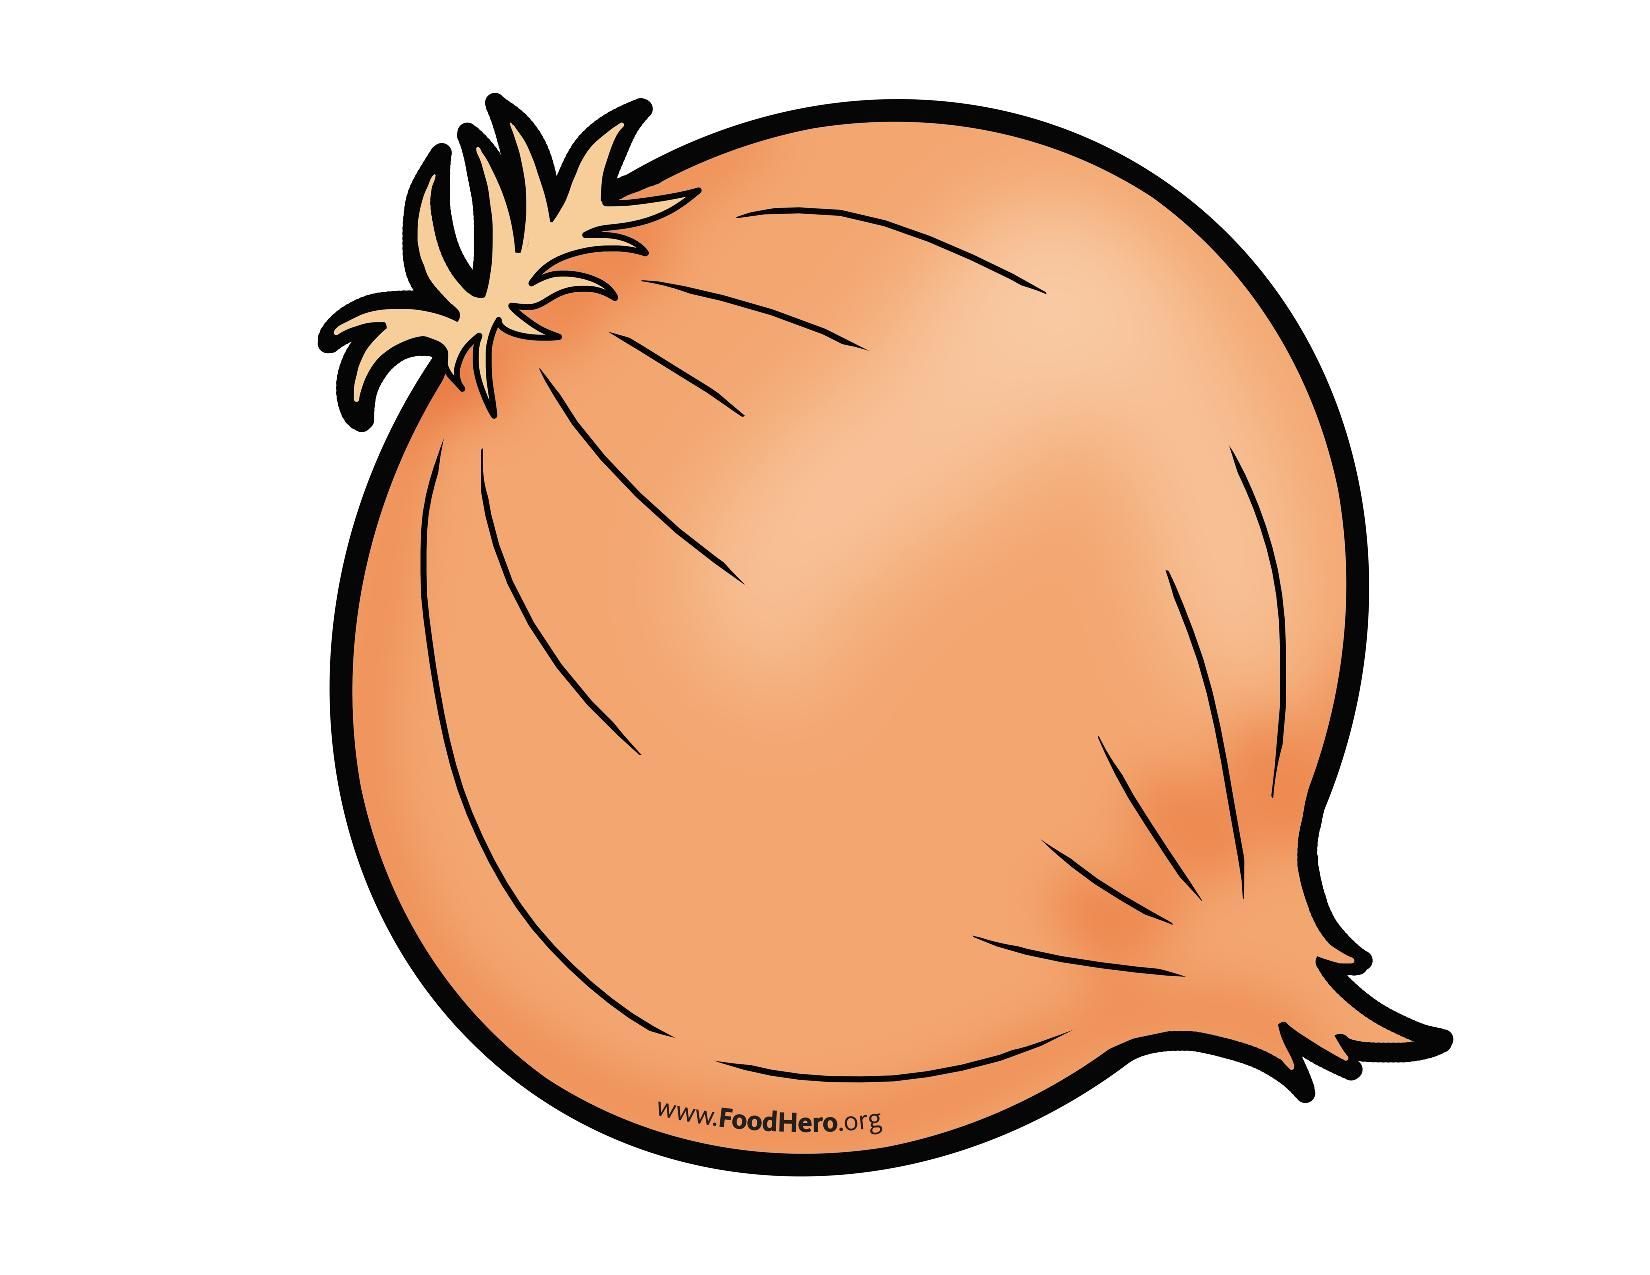 Onion colored illustration #onion.